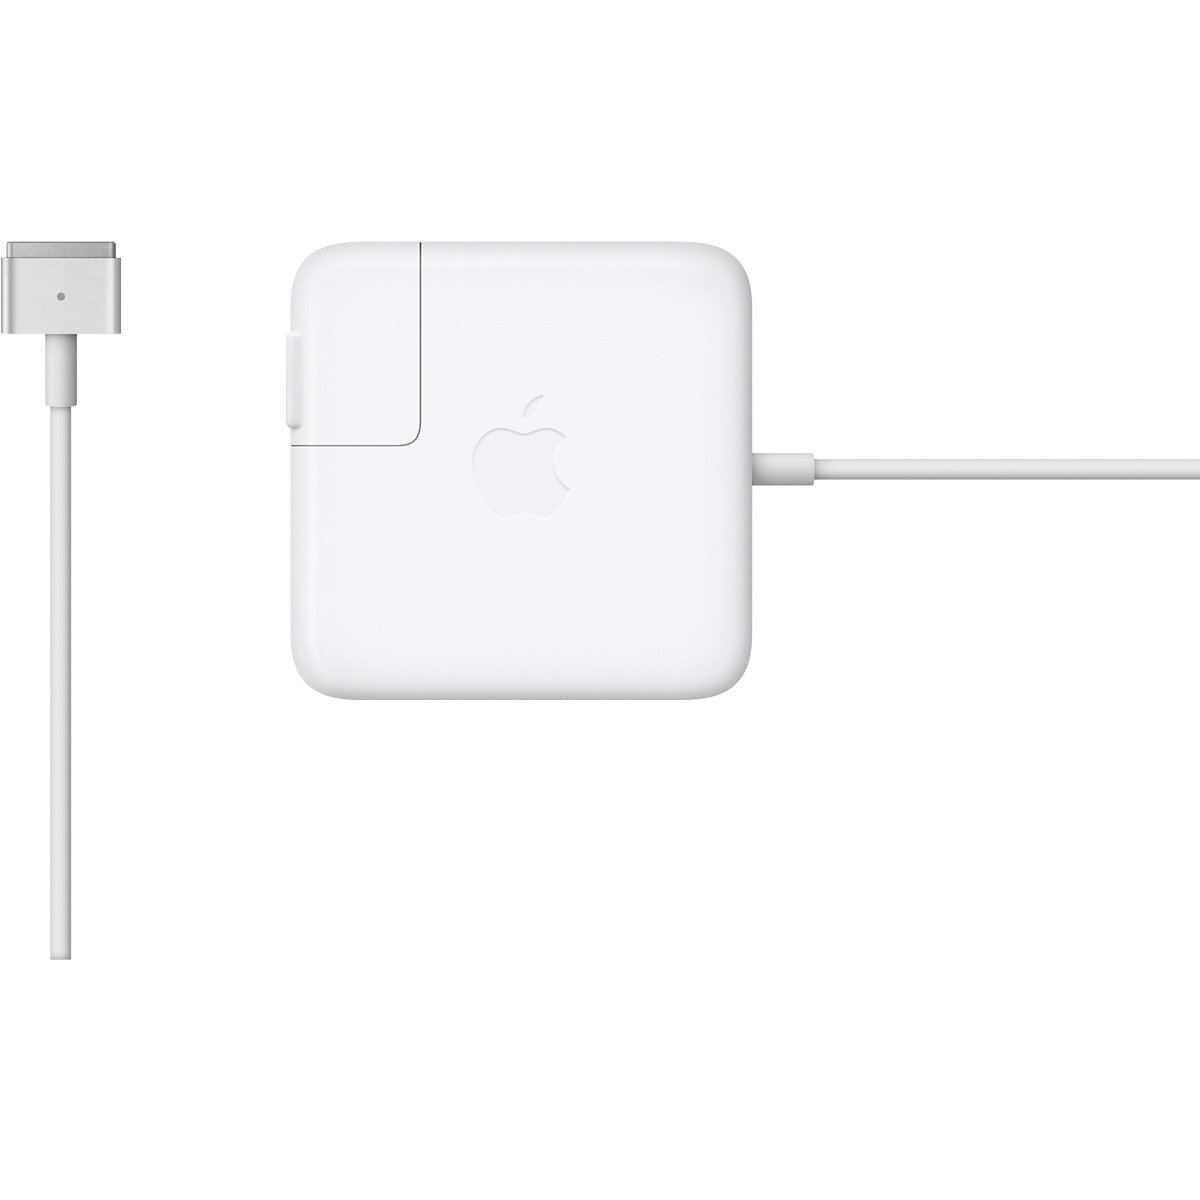 Apple MagSafe 2 Power Adapter for MacBook Air, 45W MAGSAFE2-45W-PWR-ADP